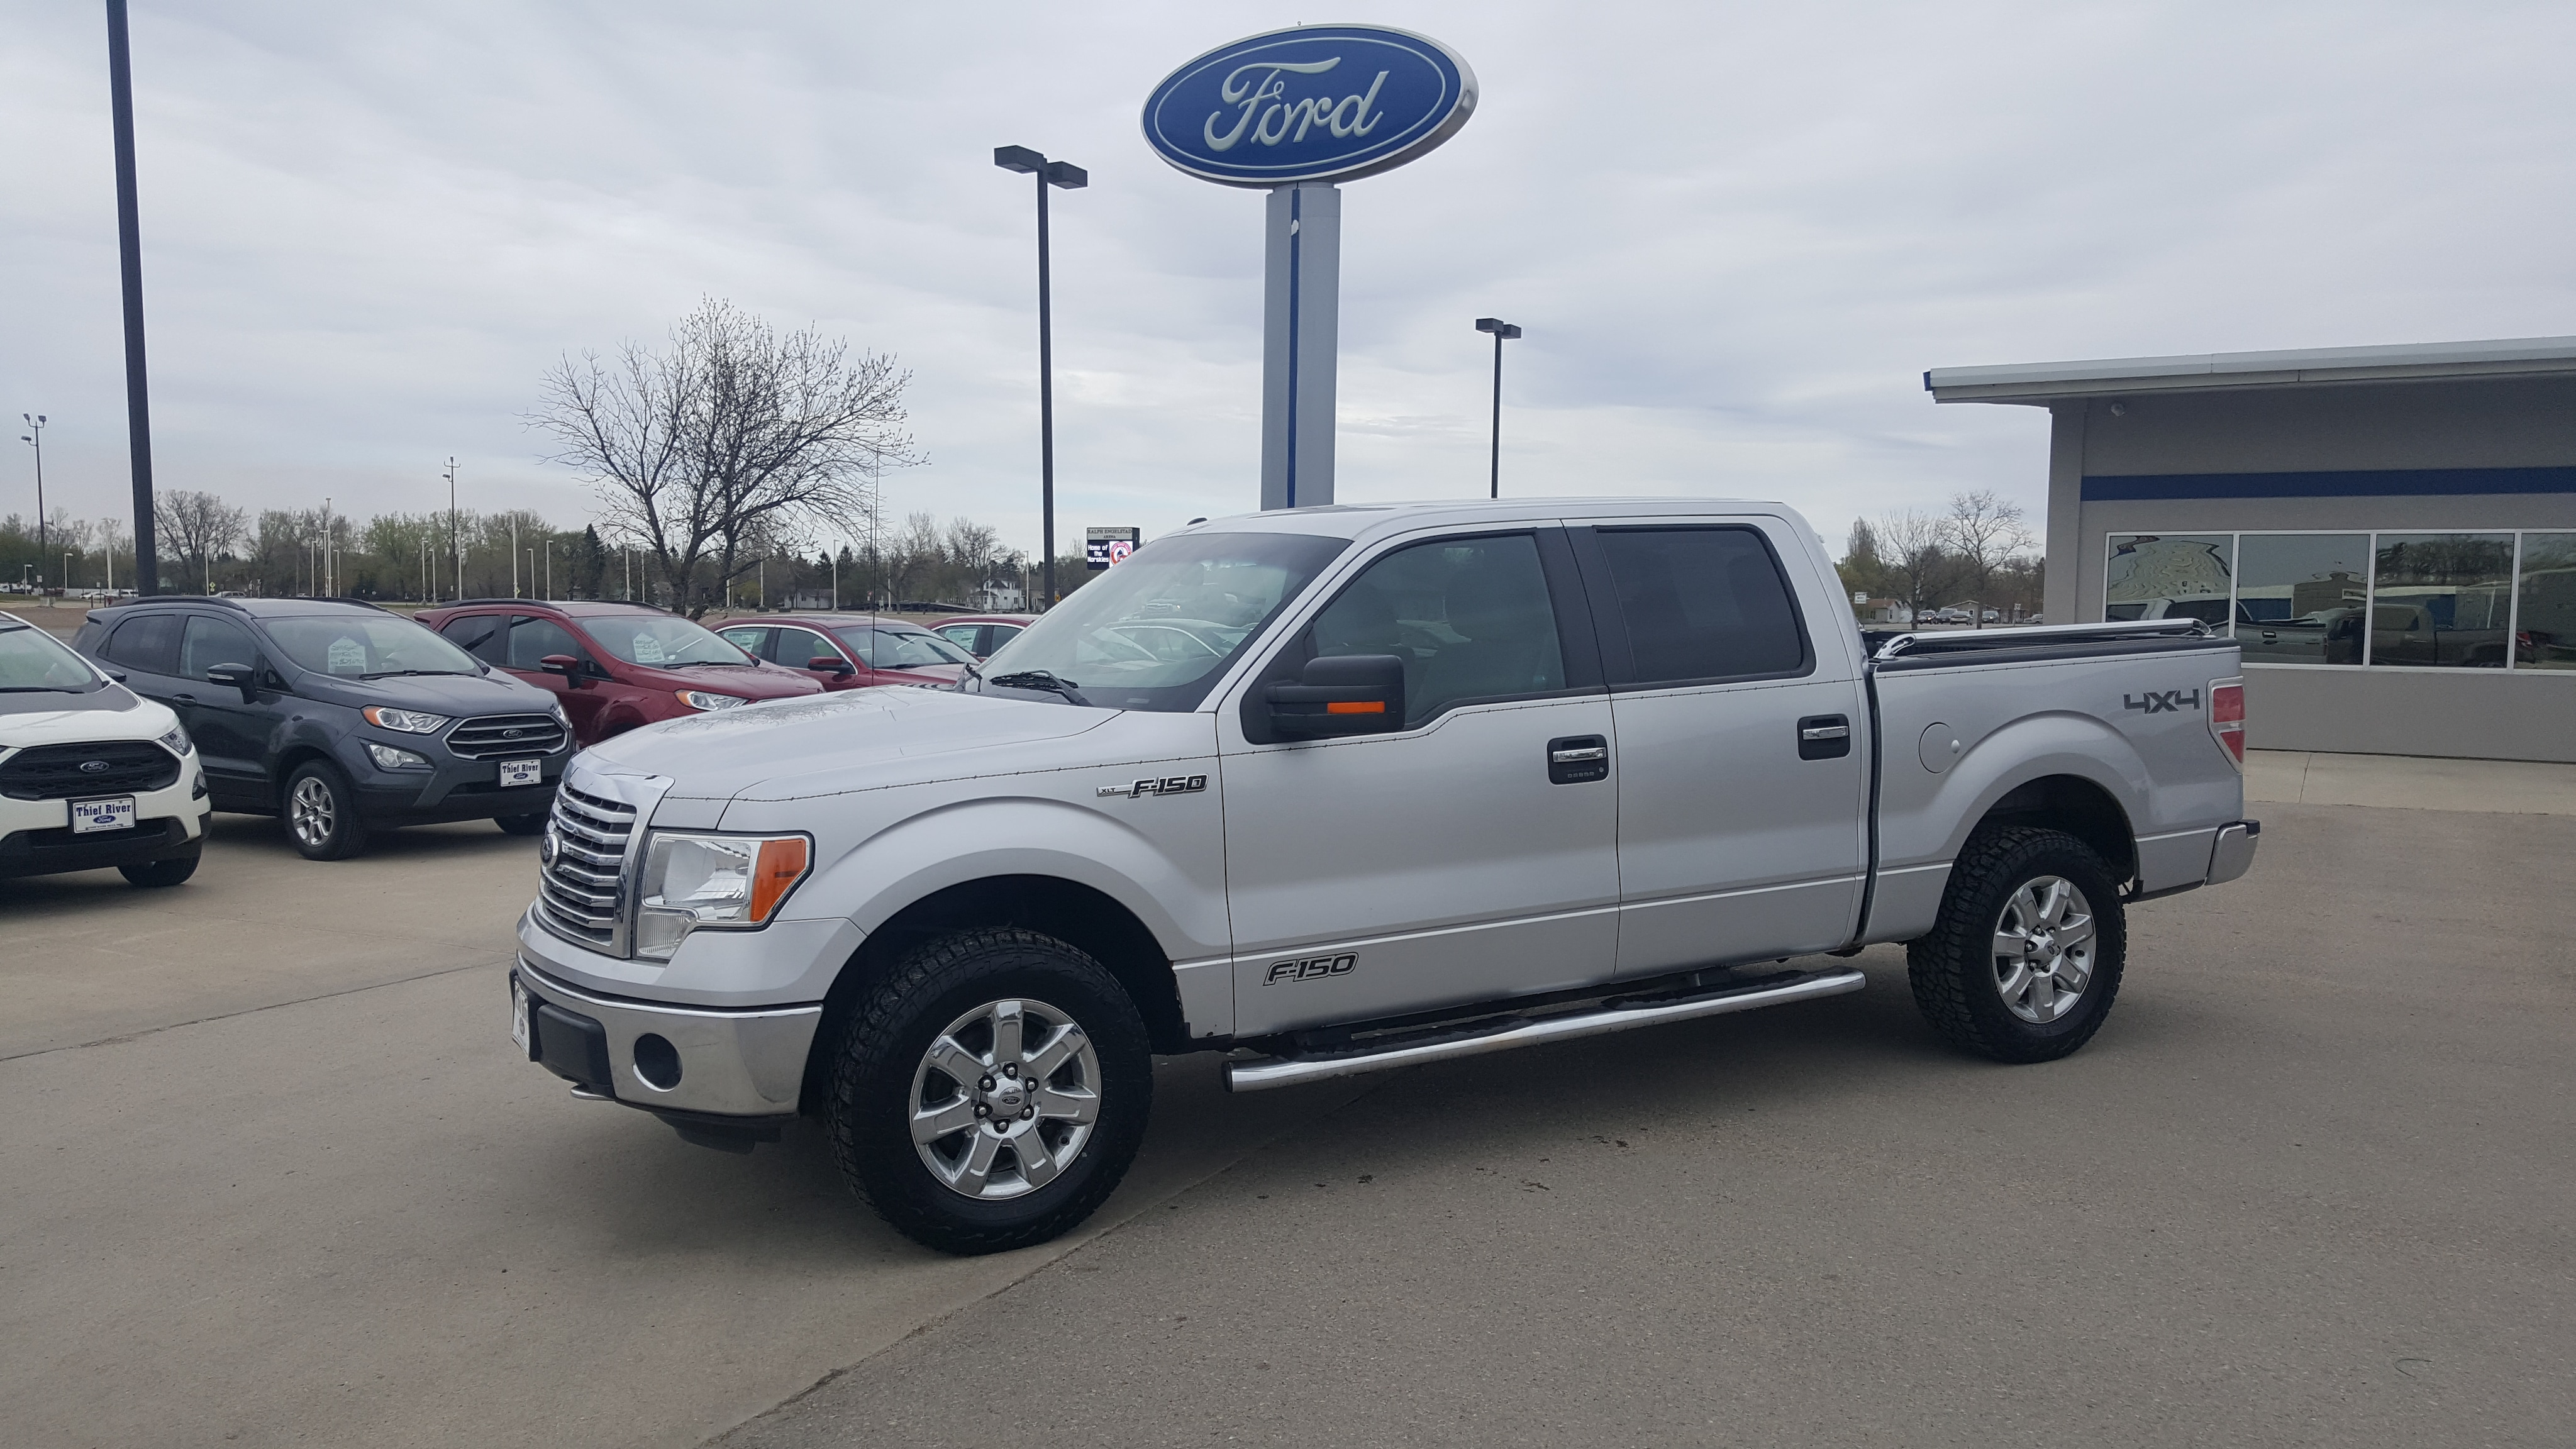 2011 Ford F-150 Crew Cab Short Bed Truck